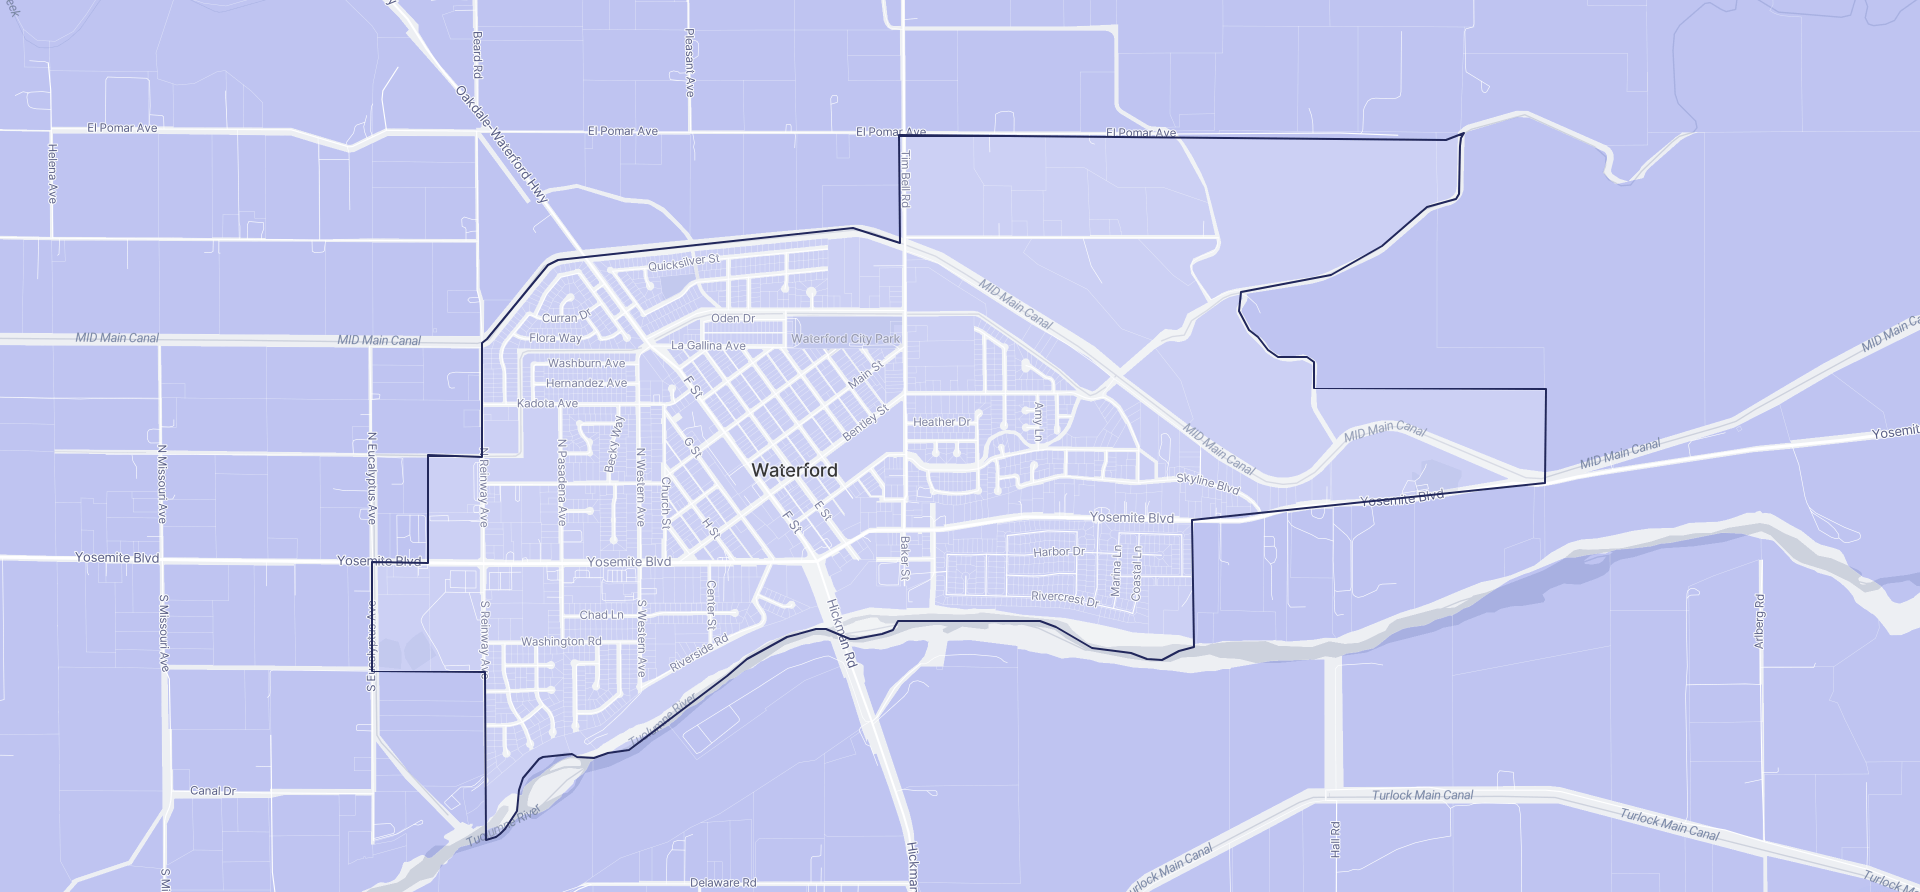 Image of Waterford boundaries on a map.